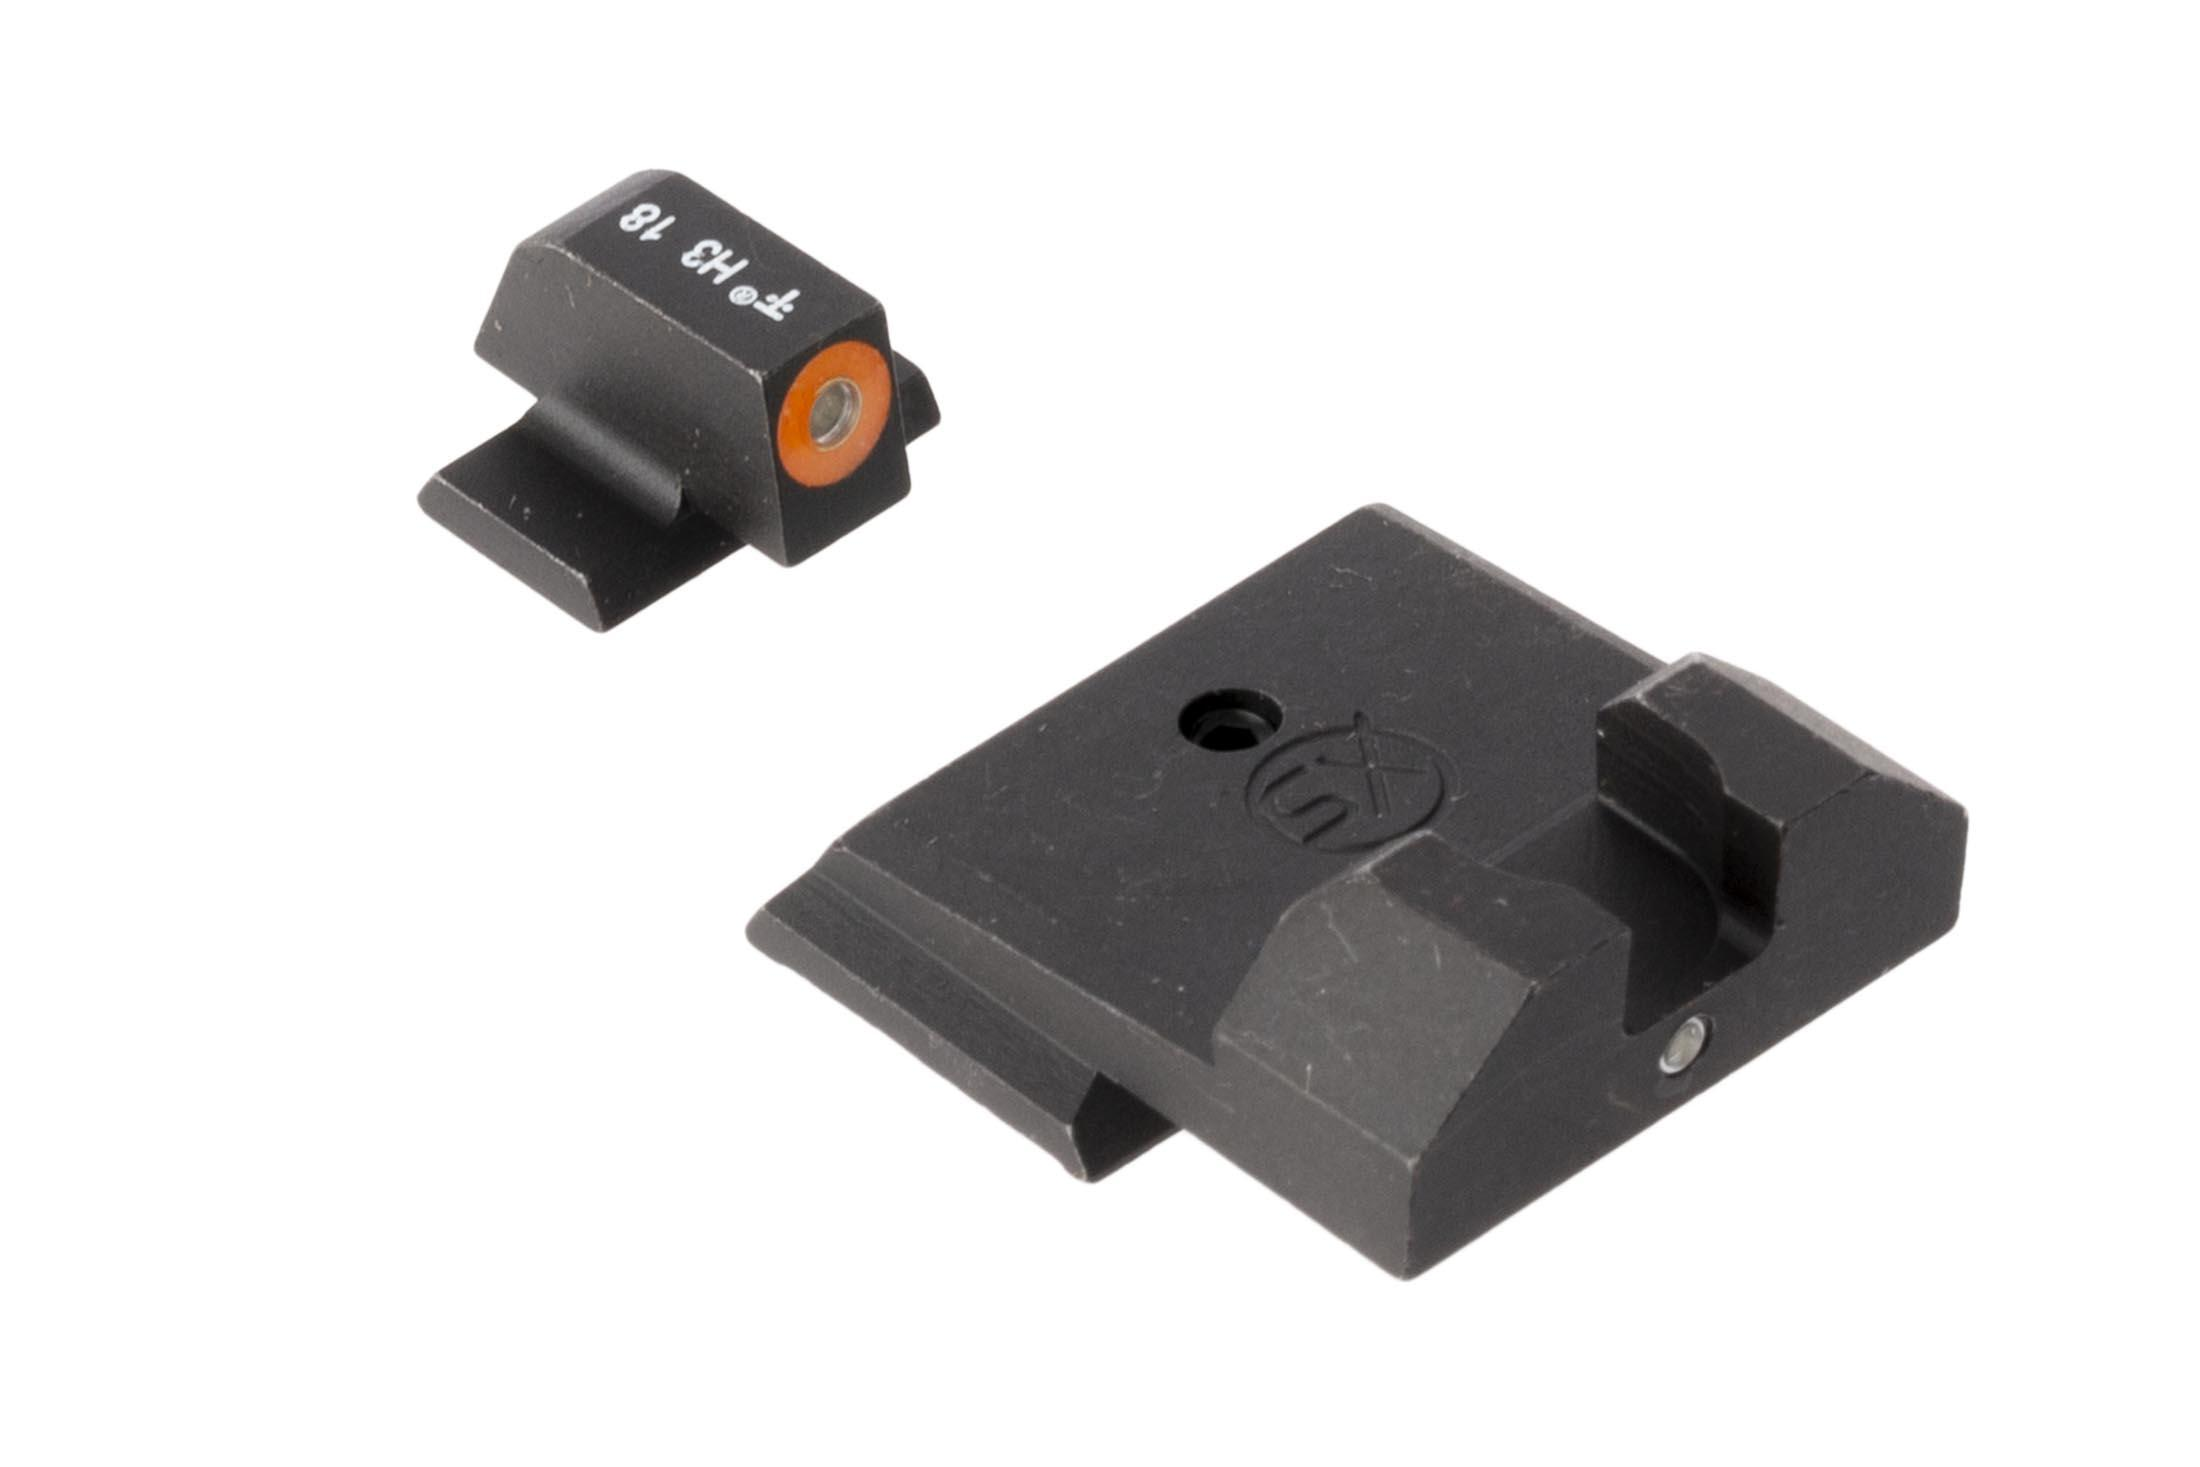 XS Sights F8 night sights for Smith & Wesson M&P Shield handguns feature a large, high vis orange outline front sight for rapid acquisition